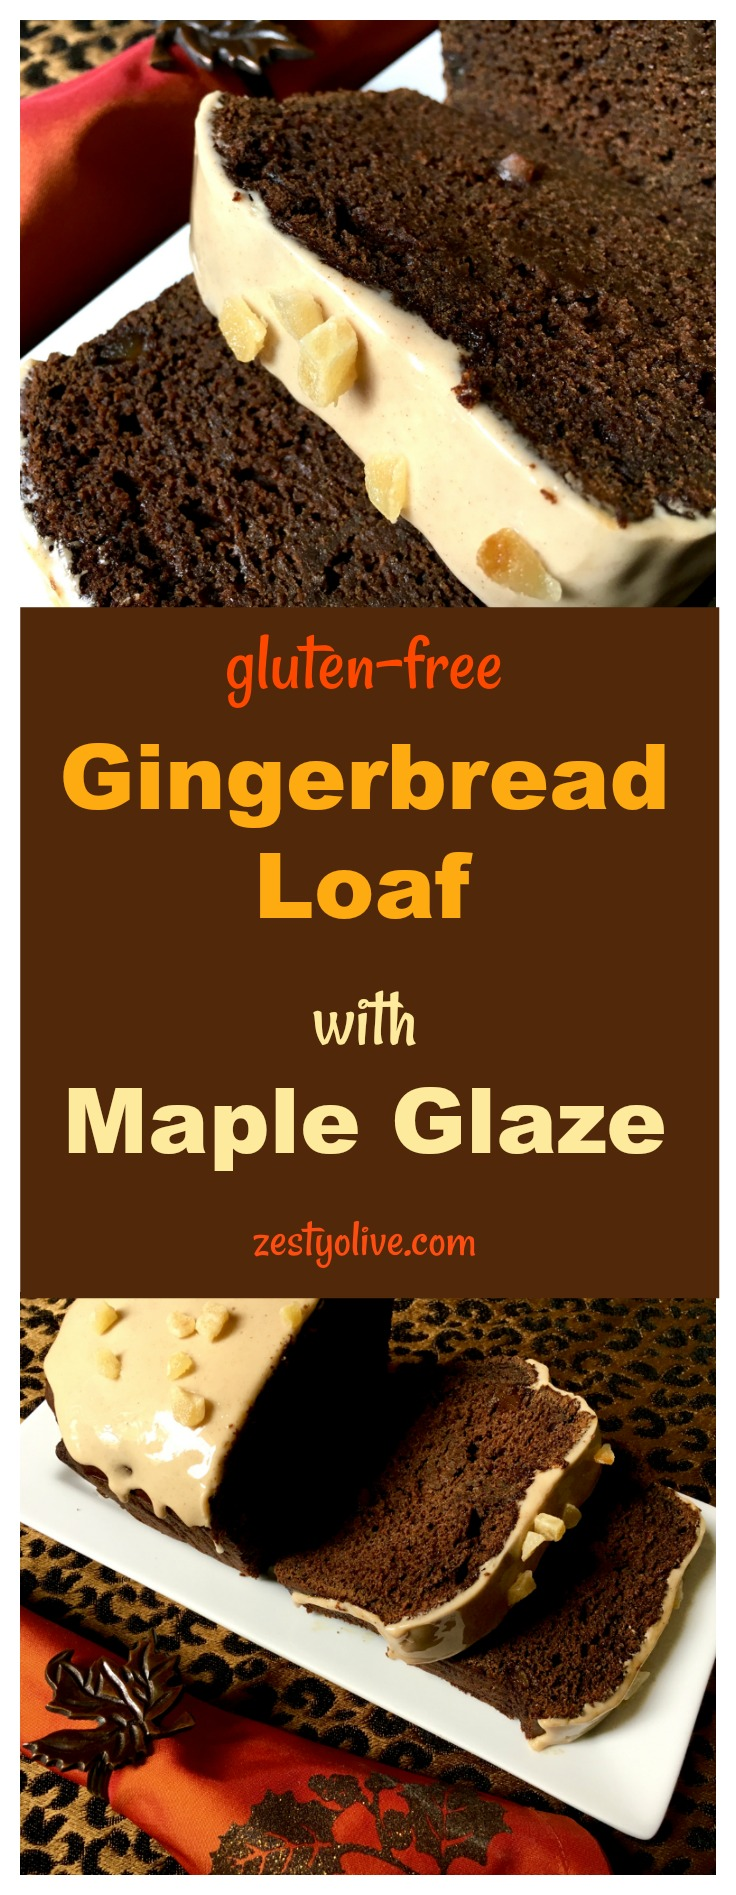 This gluten-free Gingerbread Loaf With Maple Glaze is full of rich molasses and ginger and topped with a maple glaze for a touch of sweetness.